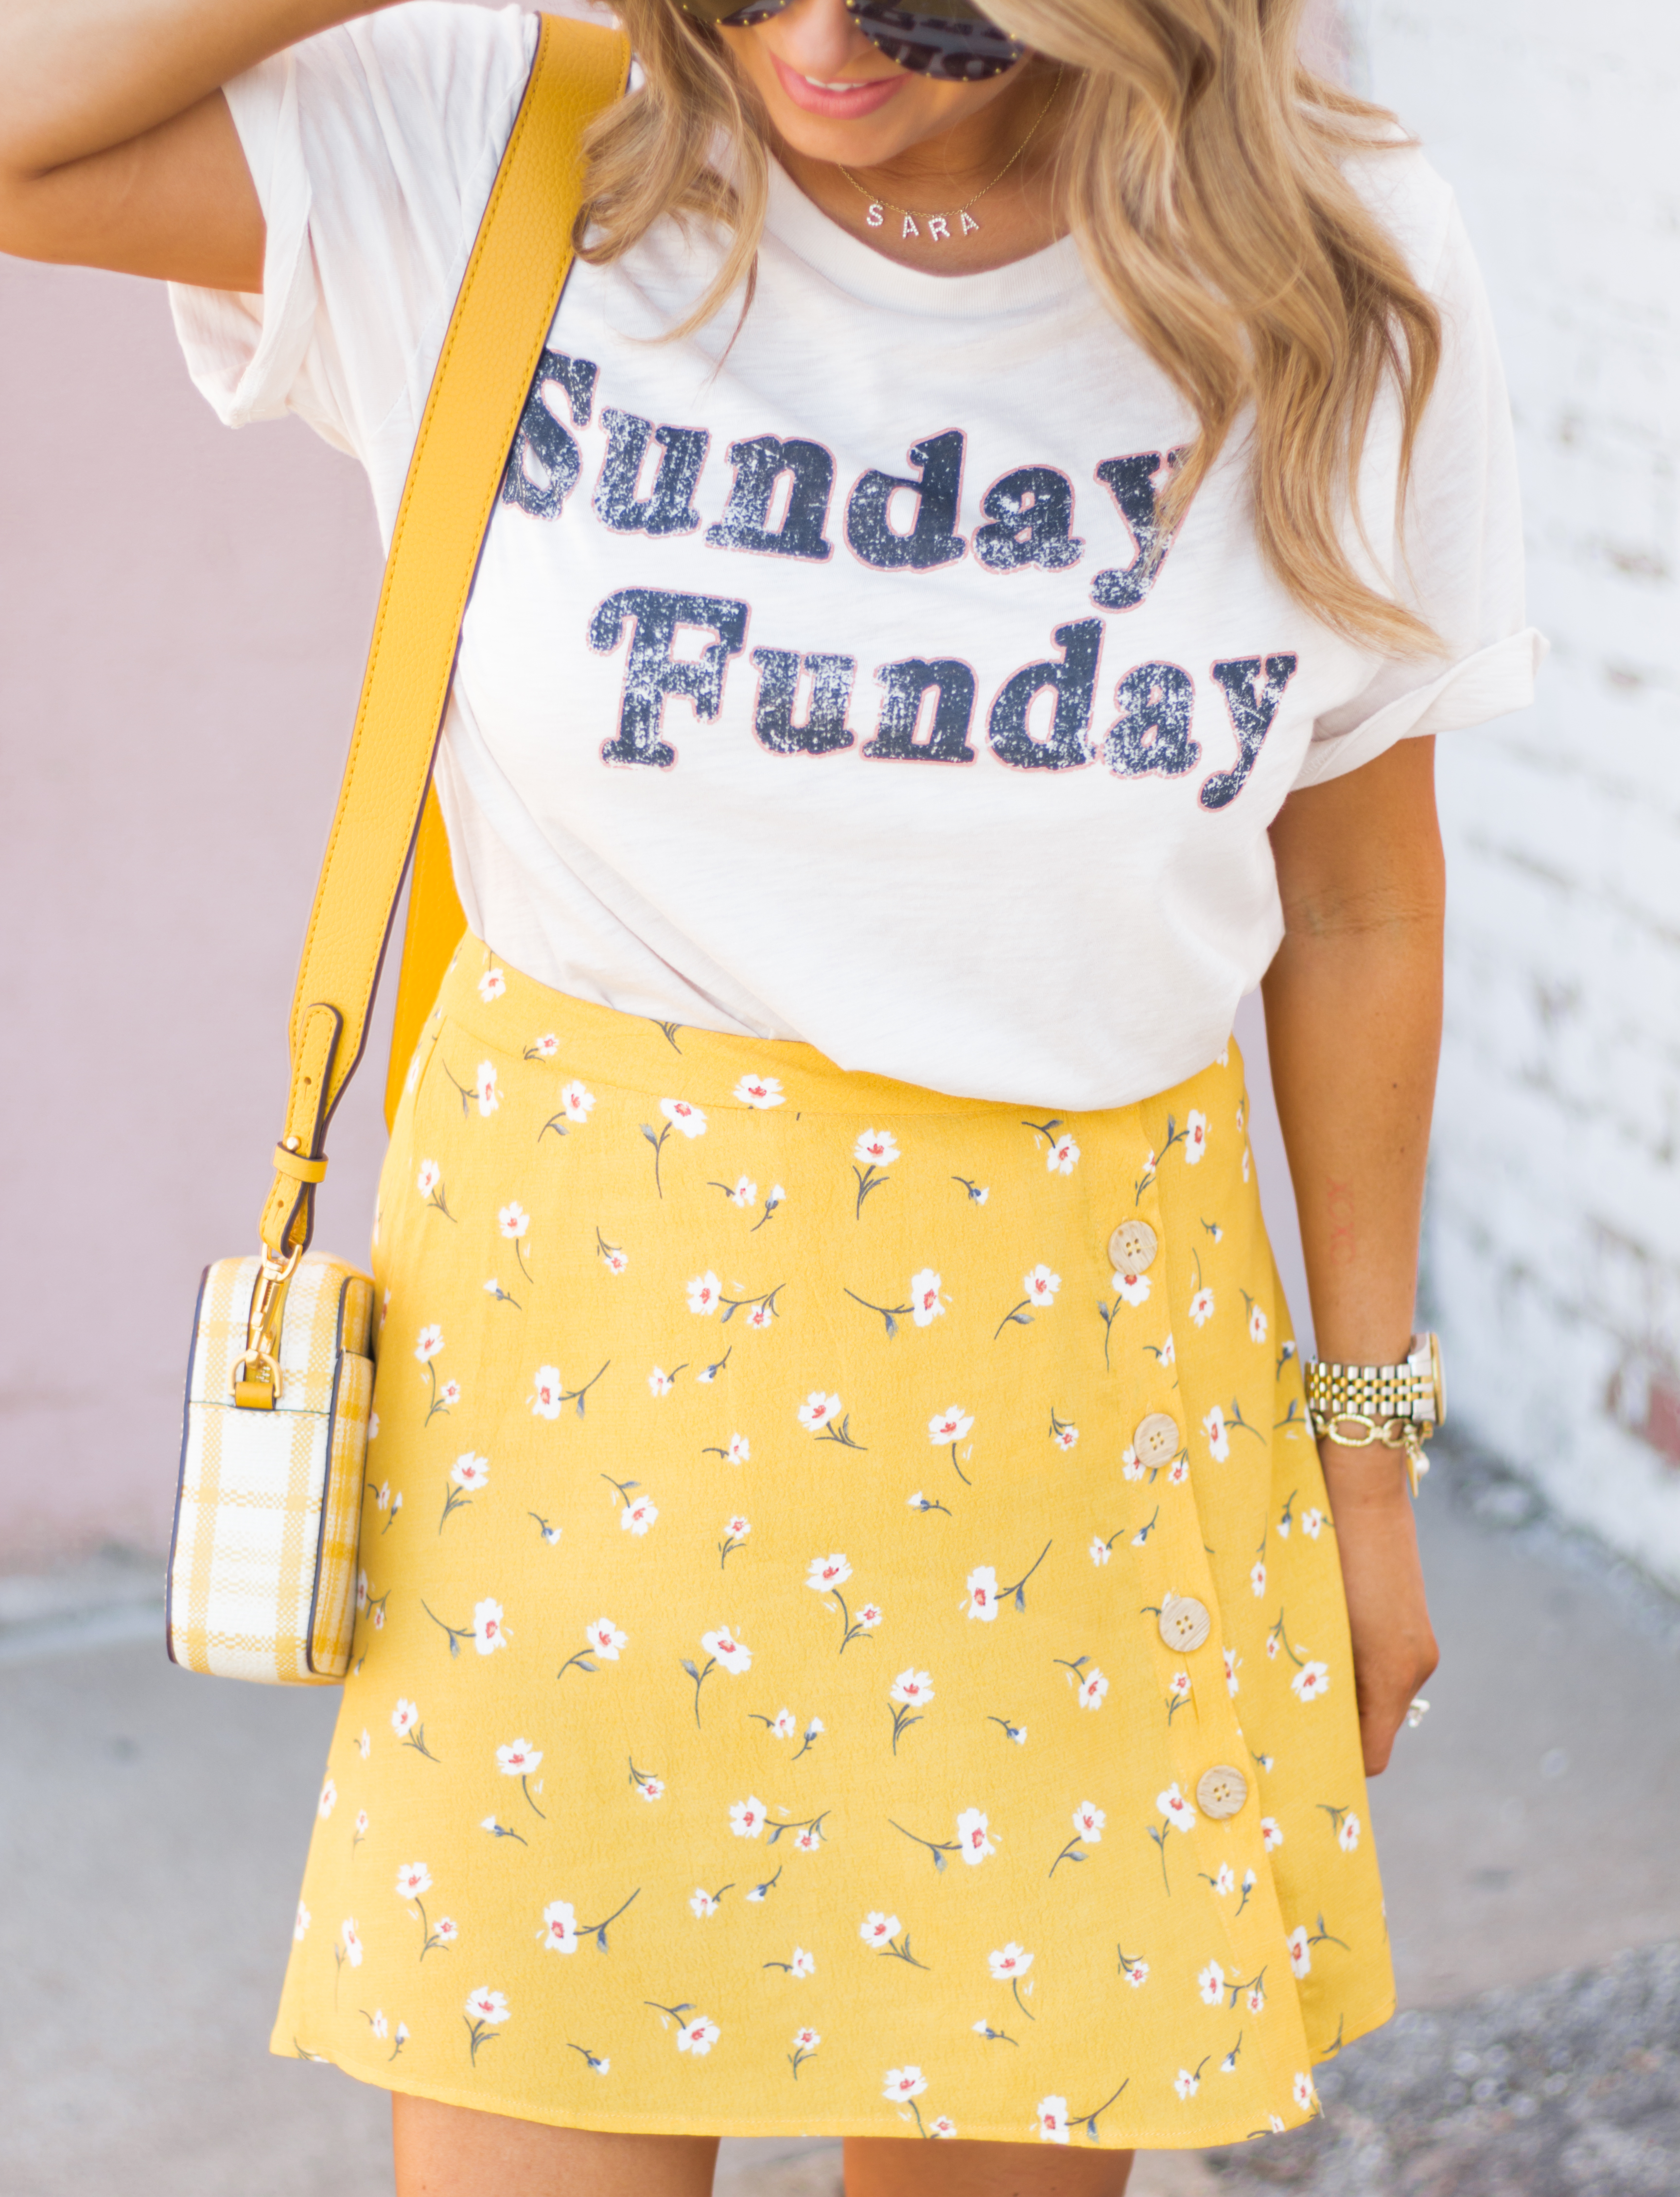 Sunday Funday-Graphic Tee-Floral Skirt-Mini Skirt-Spring Fashion-Spring Style-Tory Burch Purse-Quay Sunglasses-Tan Wedges-Espadrilles-Yellow-Colorful Style-Sabby Style-Women's Fashion-Omaha Blog-Omaha Blogger-8